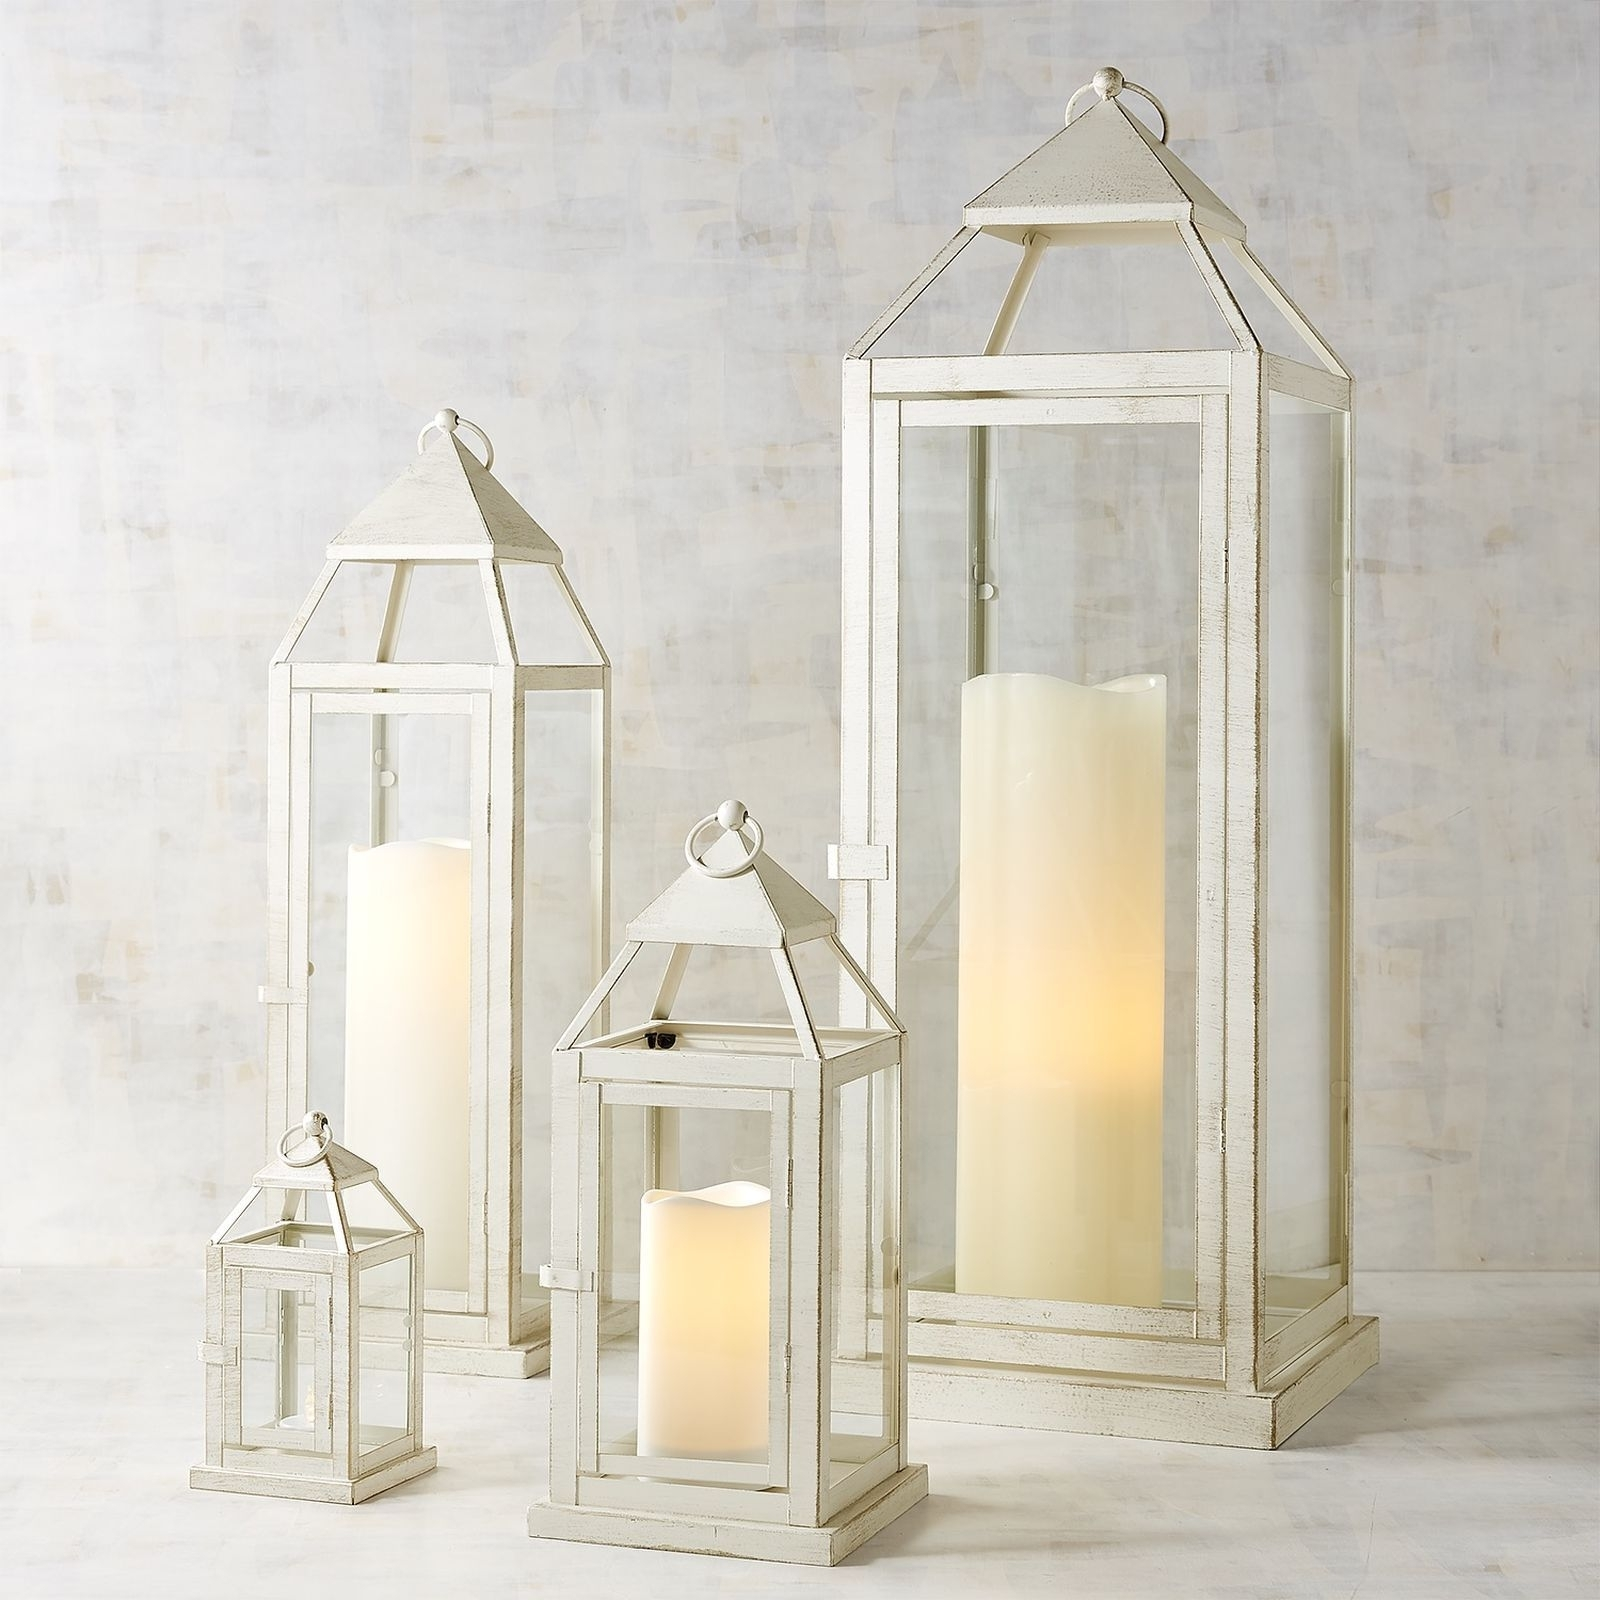 Well Liked Rust Proof Outdoor Lanterns Intended For Landen White Metal Lanterns (View 19 of 20)